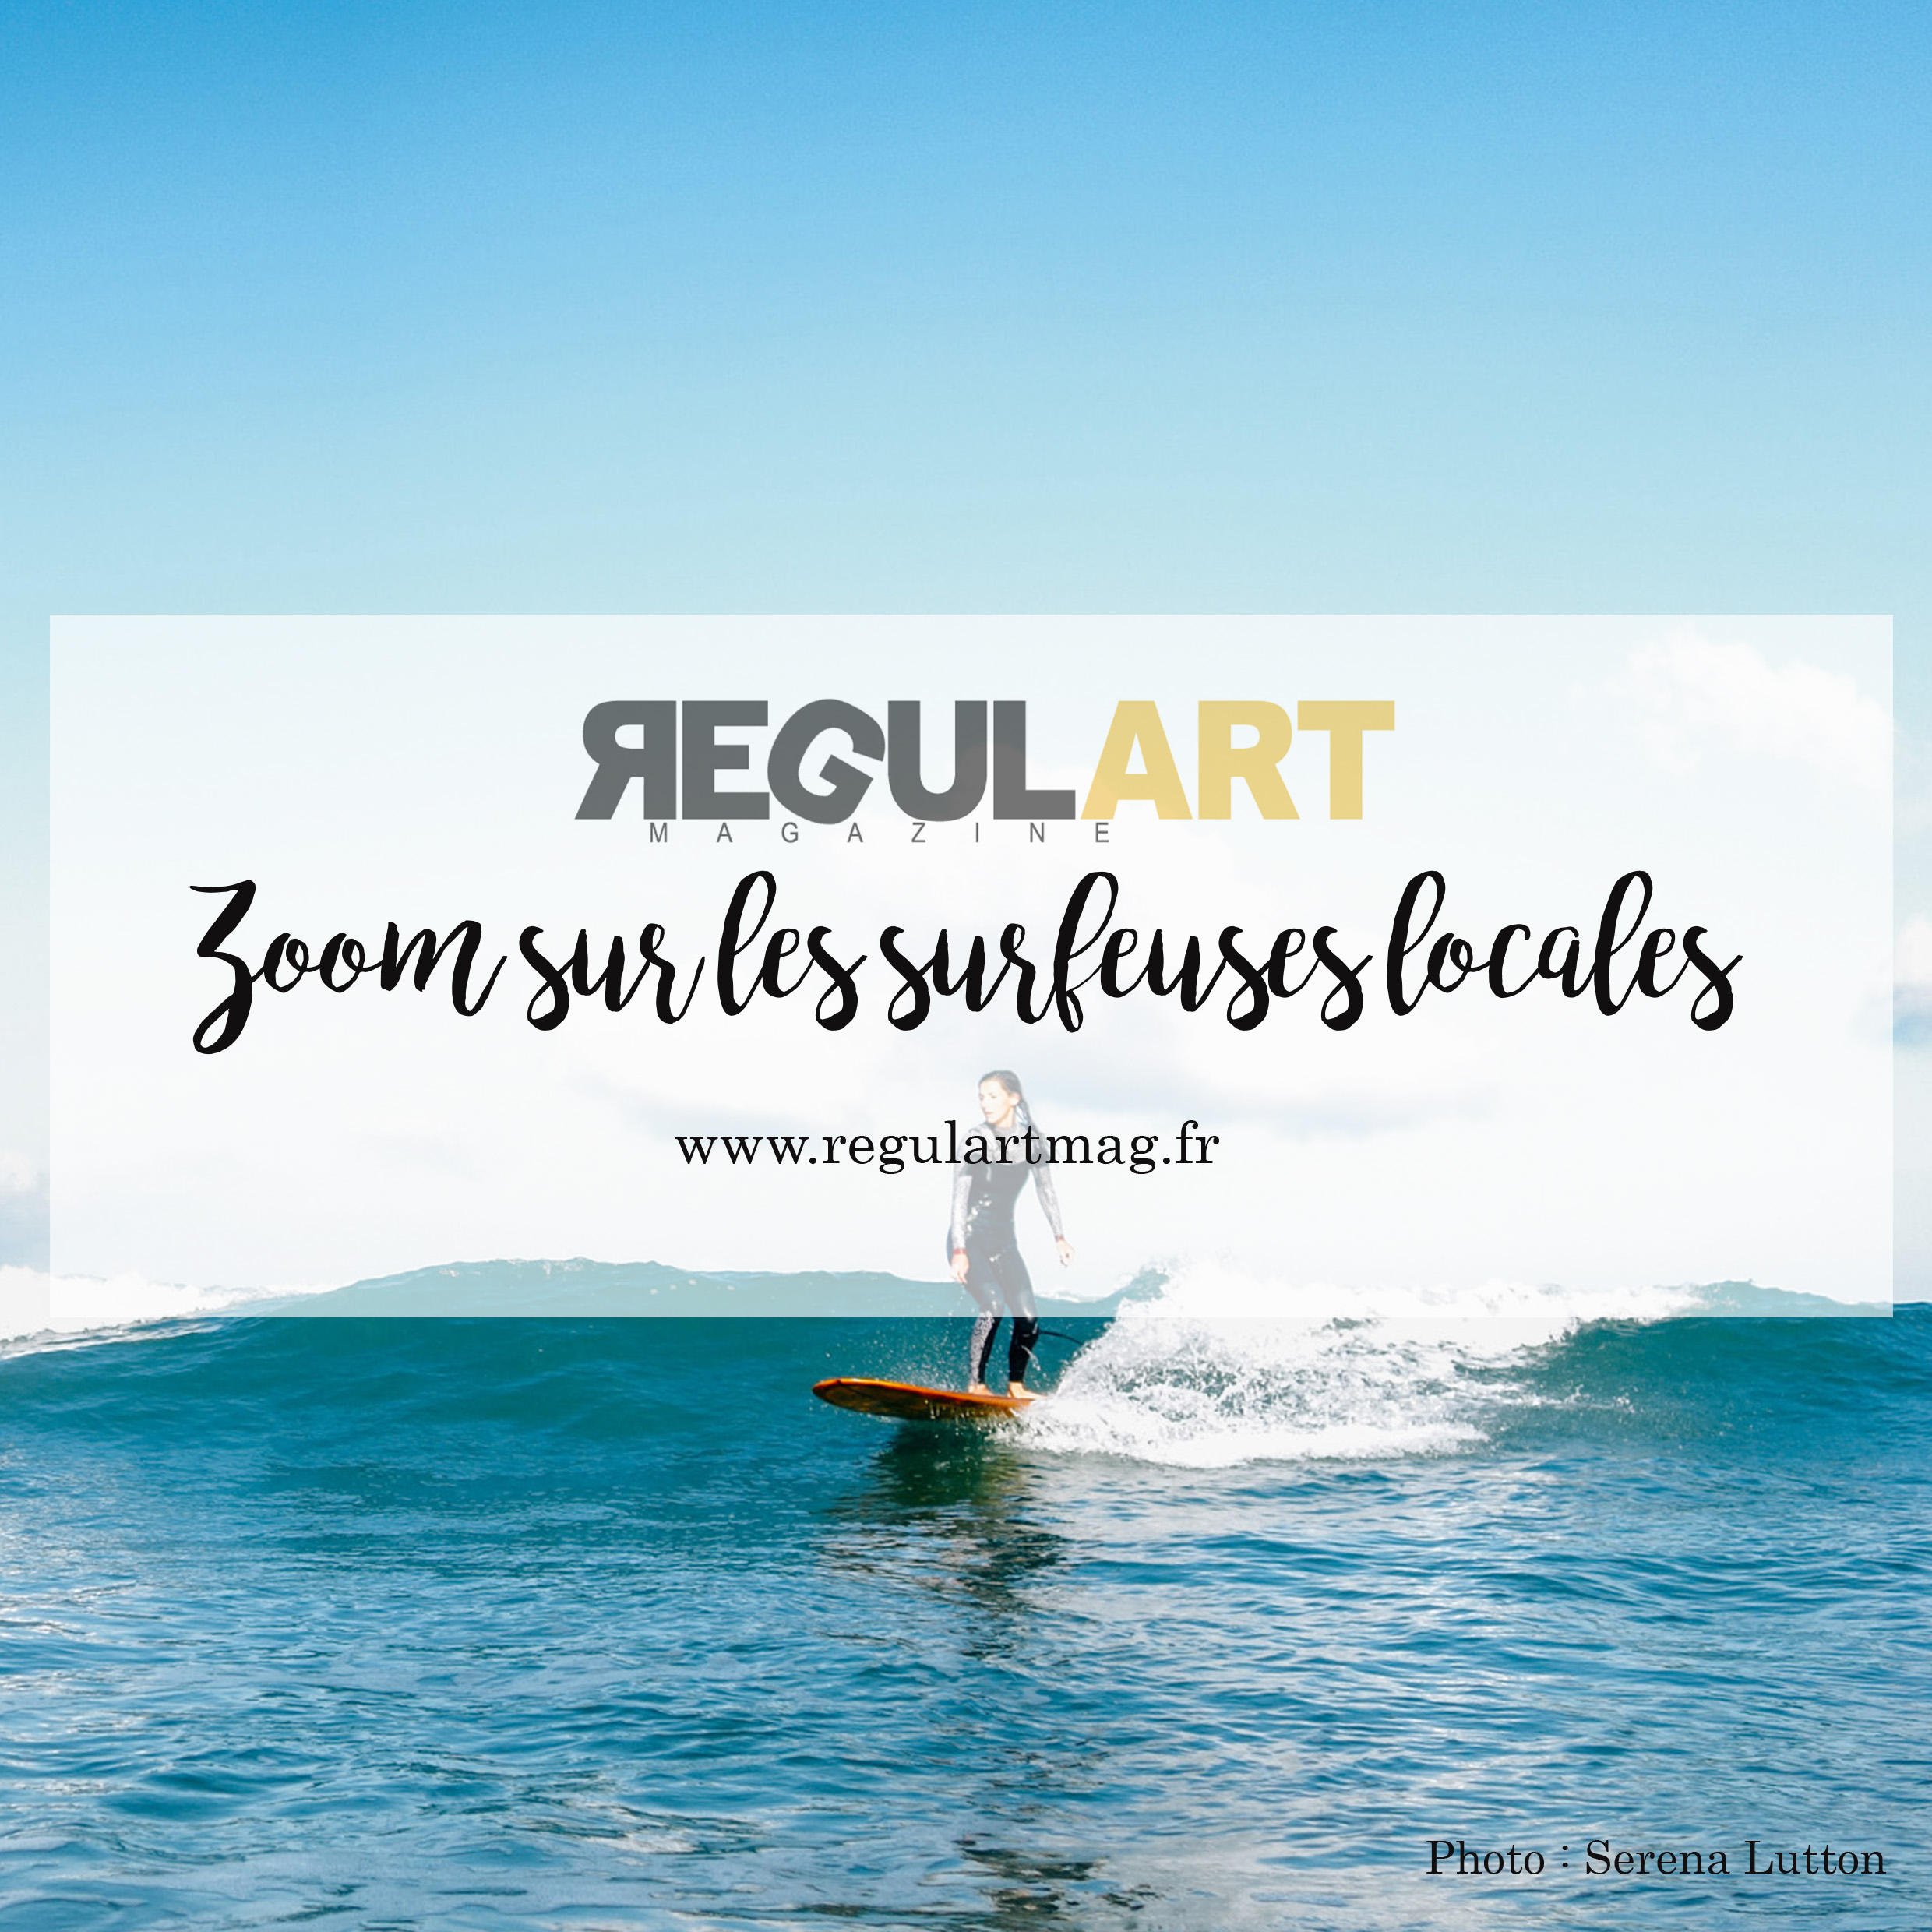 REGUART_SurfMadame